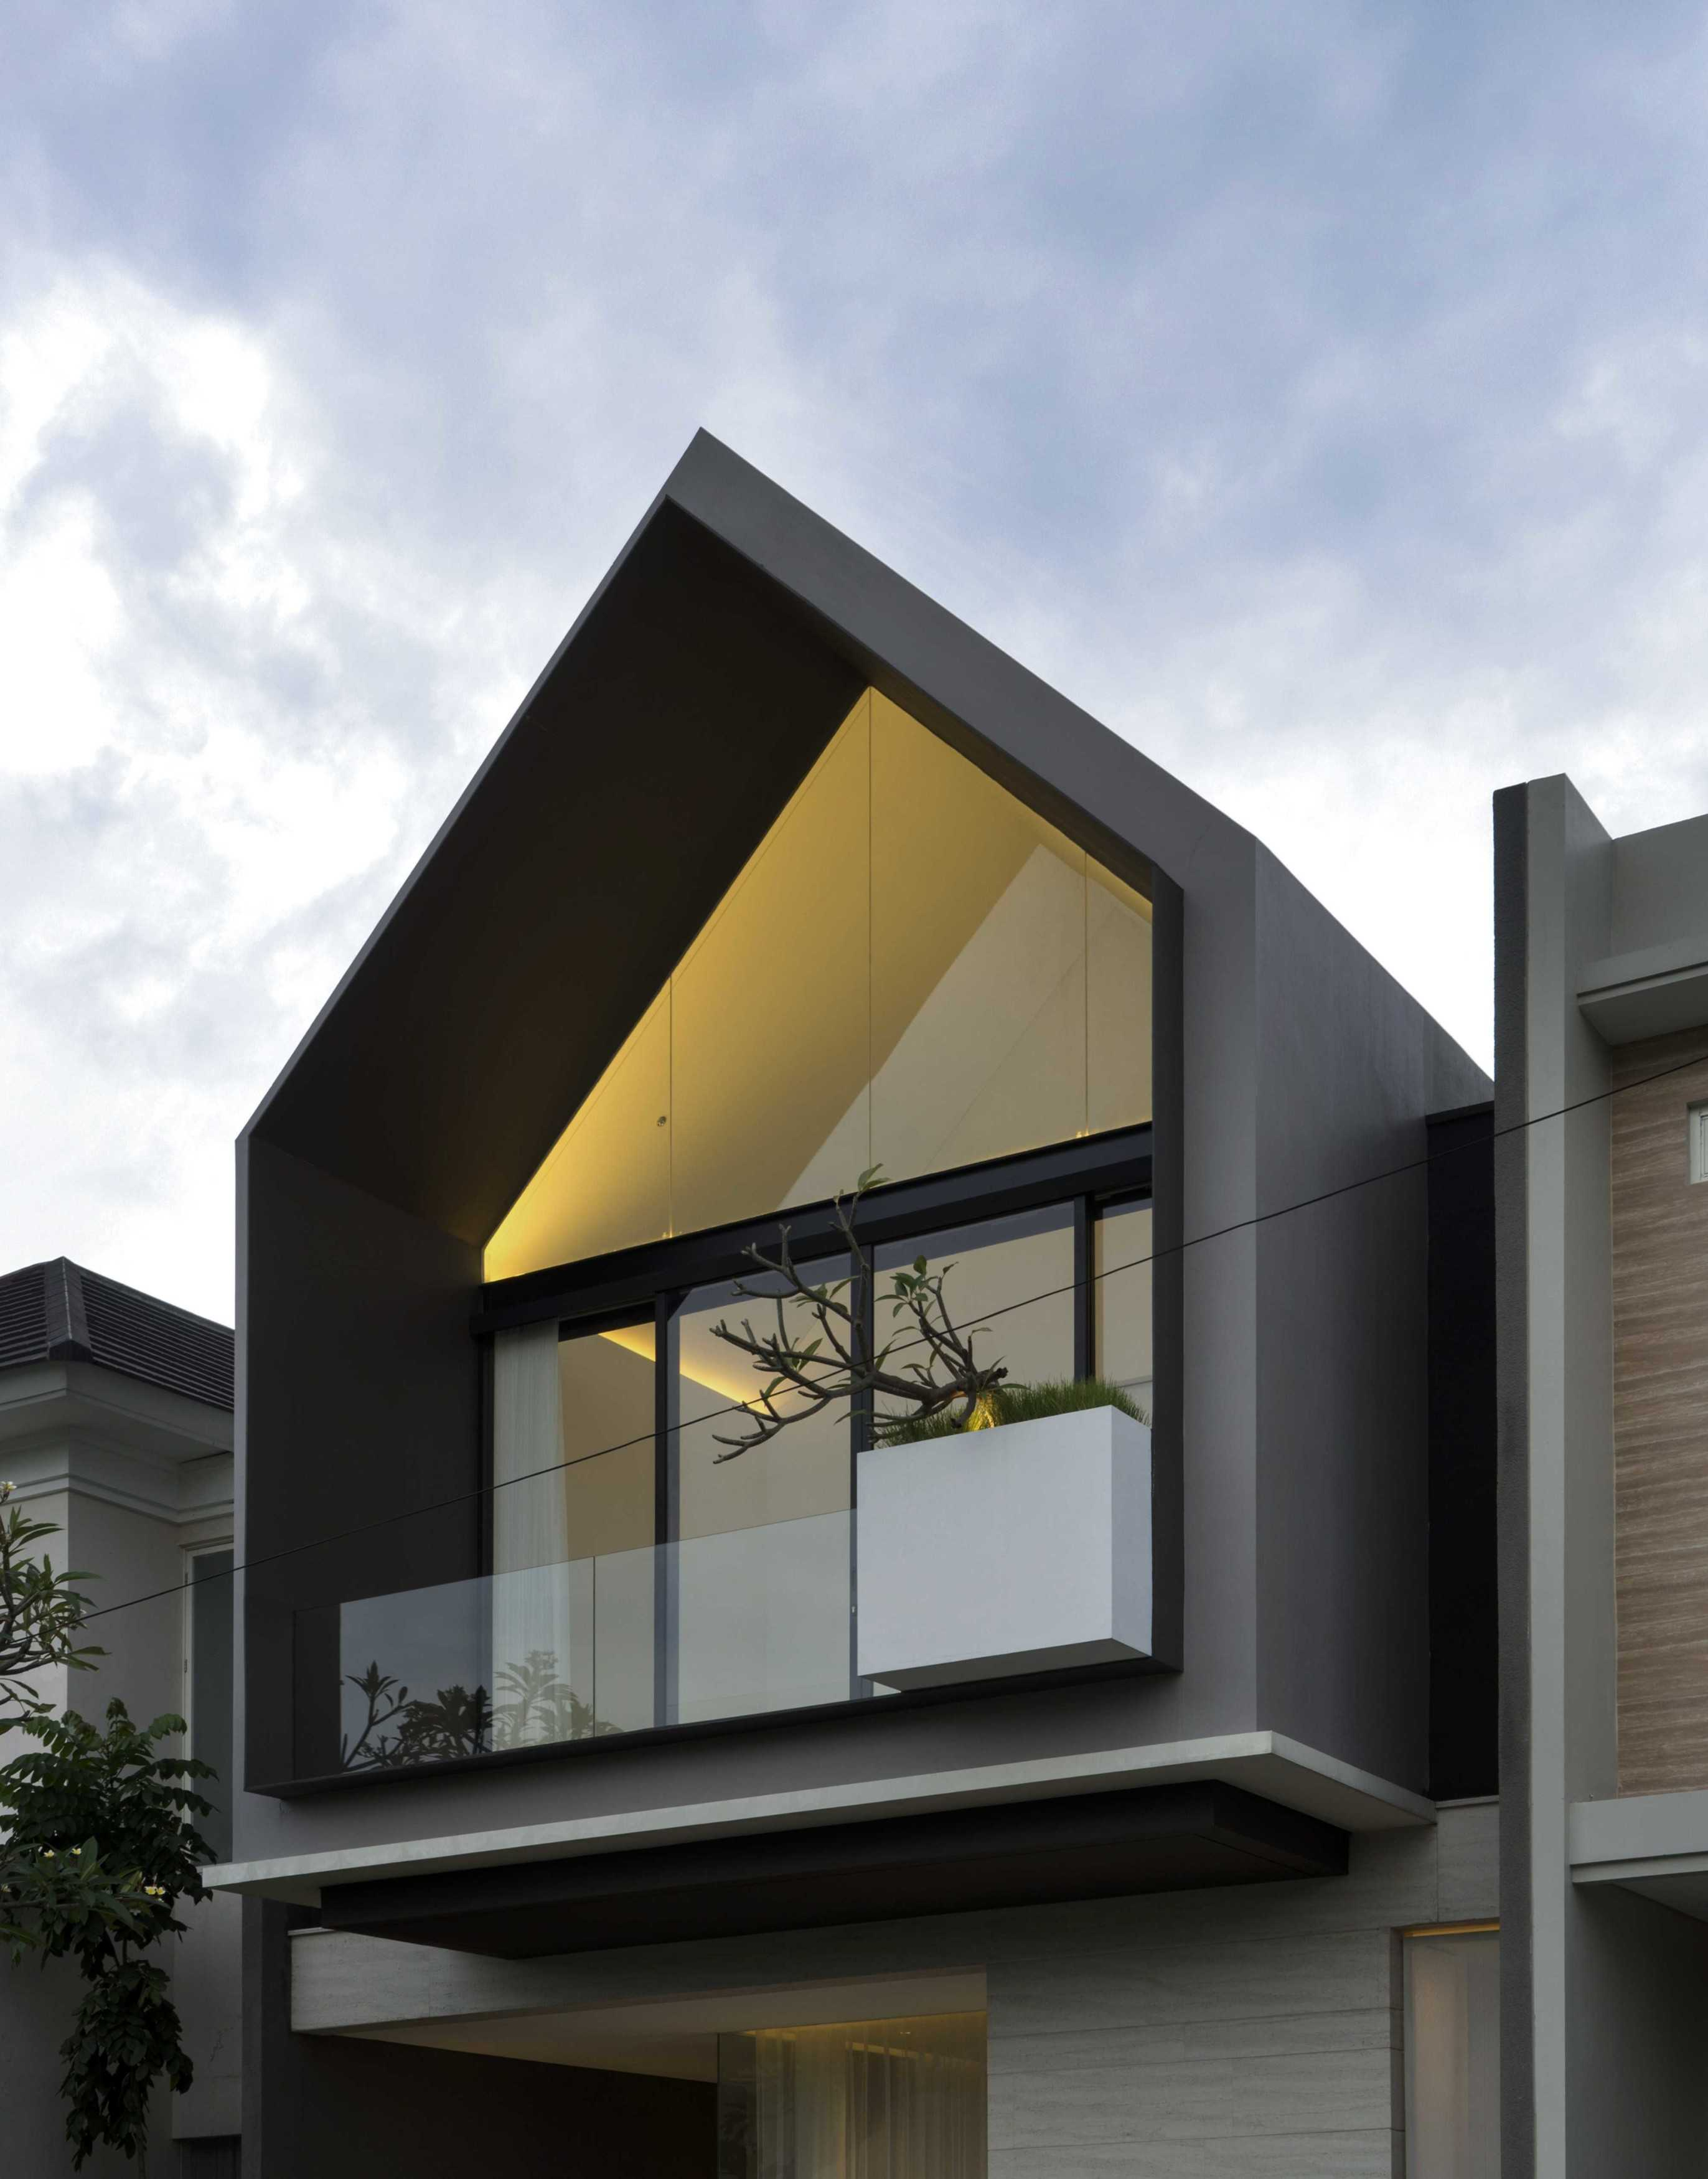 Simple Projects Architecture 'hhh' House Surabaya, Kota Sby, Jawa Timur, Indonesia  Simple-Projects-Architecture-Hhh-House   75046